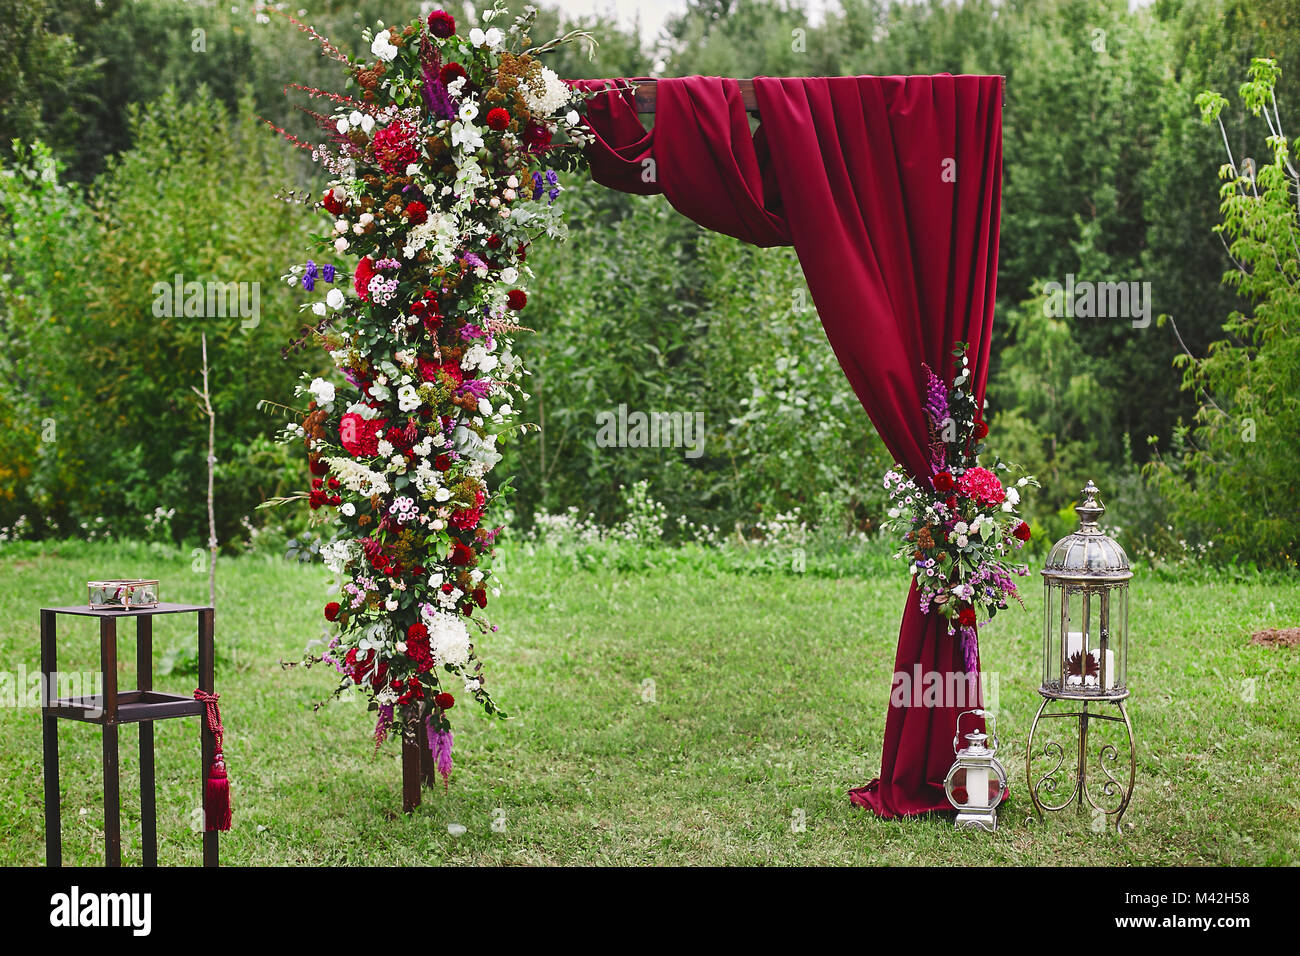 Wedding arch with vinous curtain and fresh flowers outdoors wedding arch with vinous curtain and fresh flowers outdoors wedding decoration junglespirit